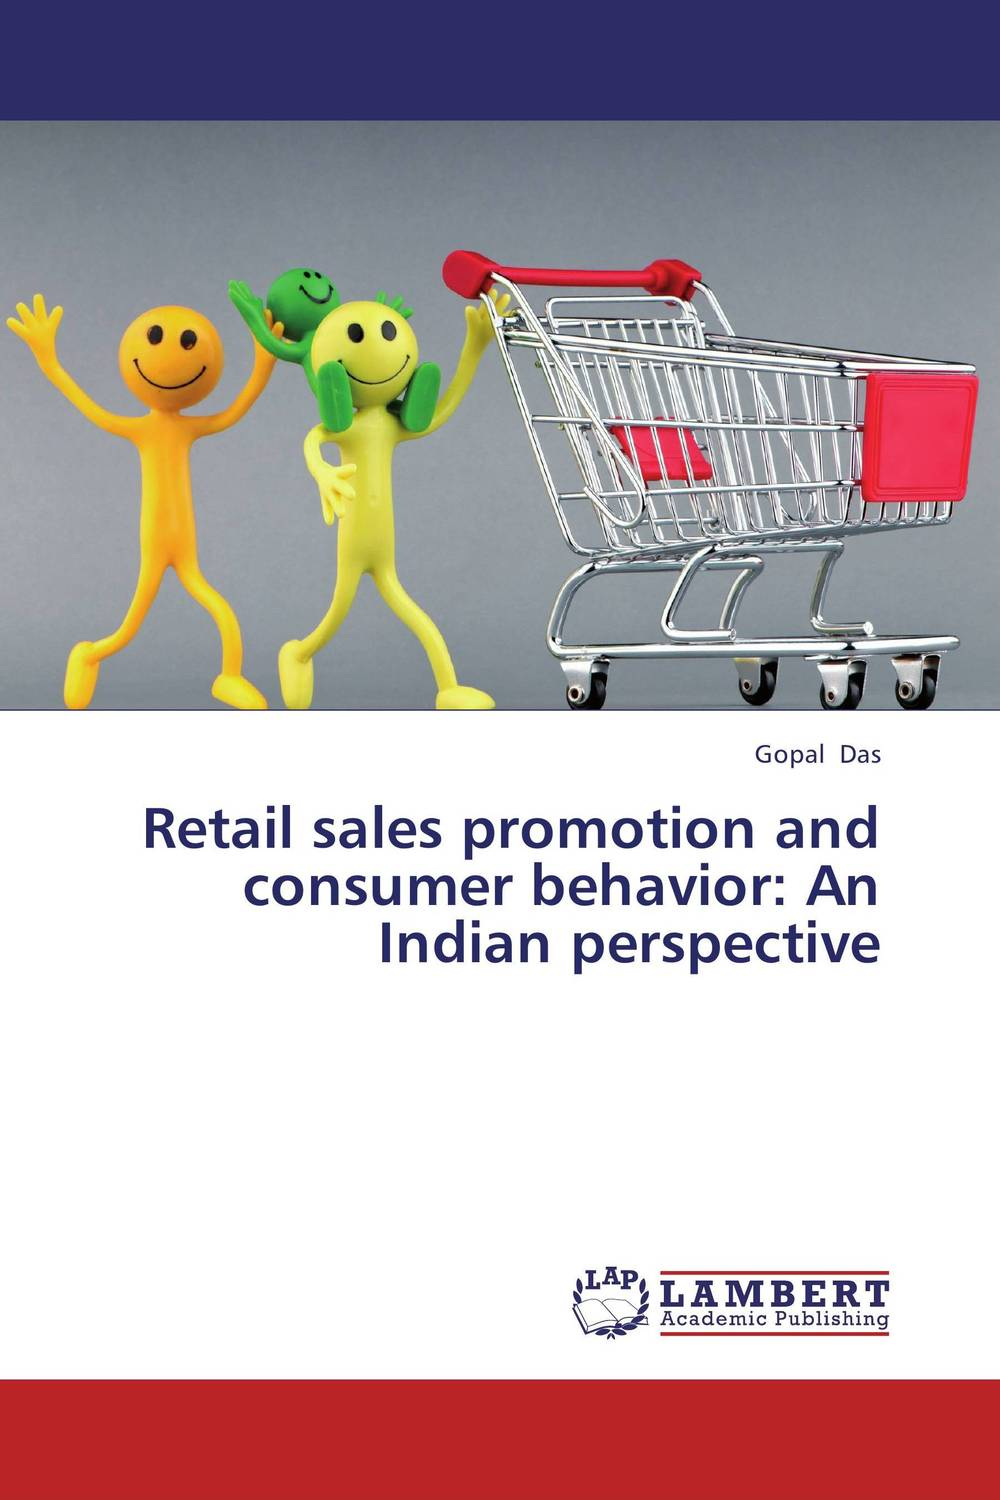 где купить  Retail sales promotion and consumer behavior: An Indian perspective  по лучшей цене